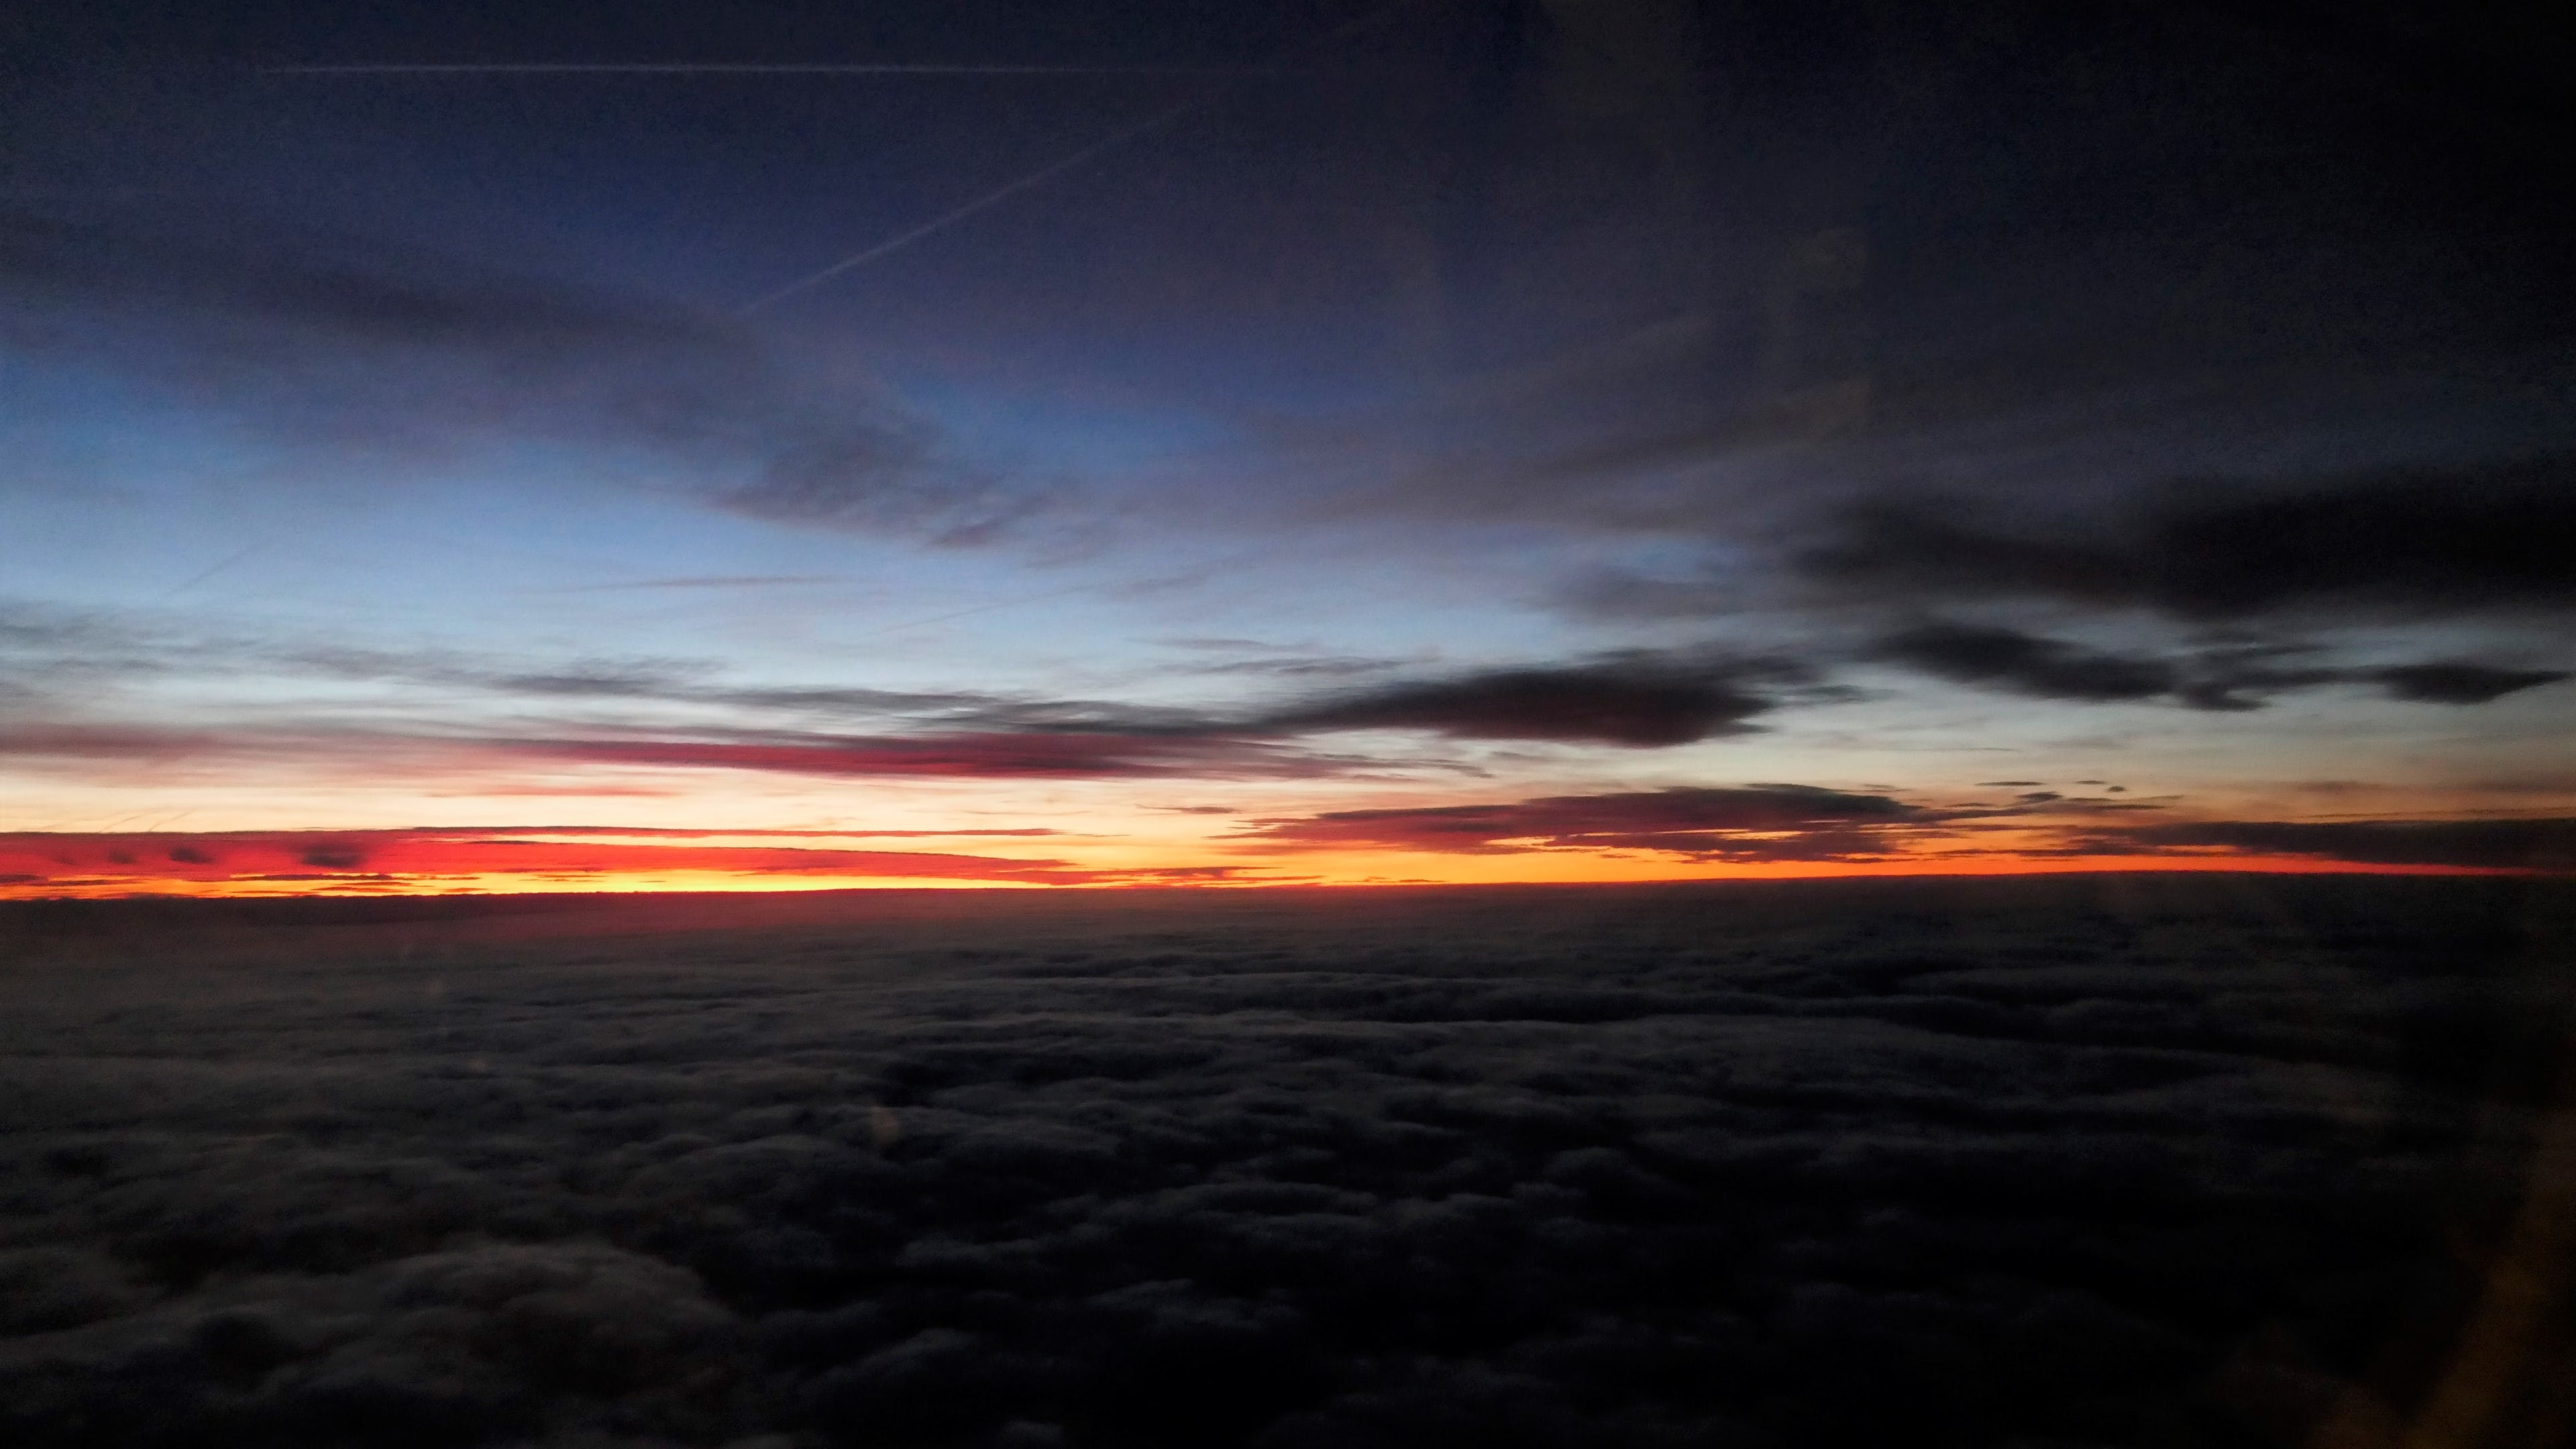 Free stock photo of airplane view, gold light to darkness, Sunset over the clouds